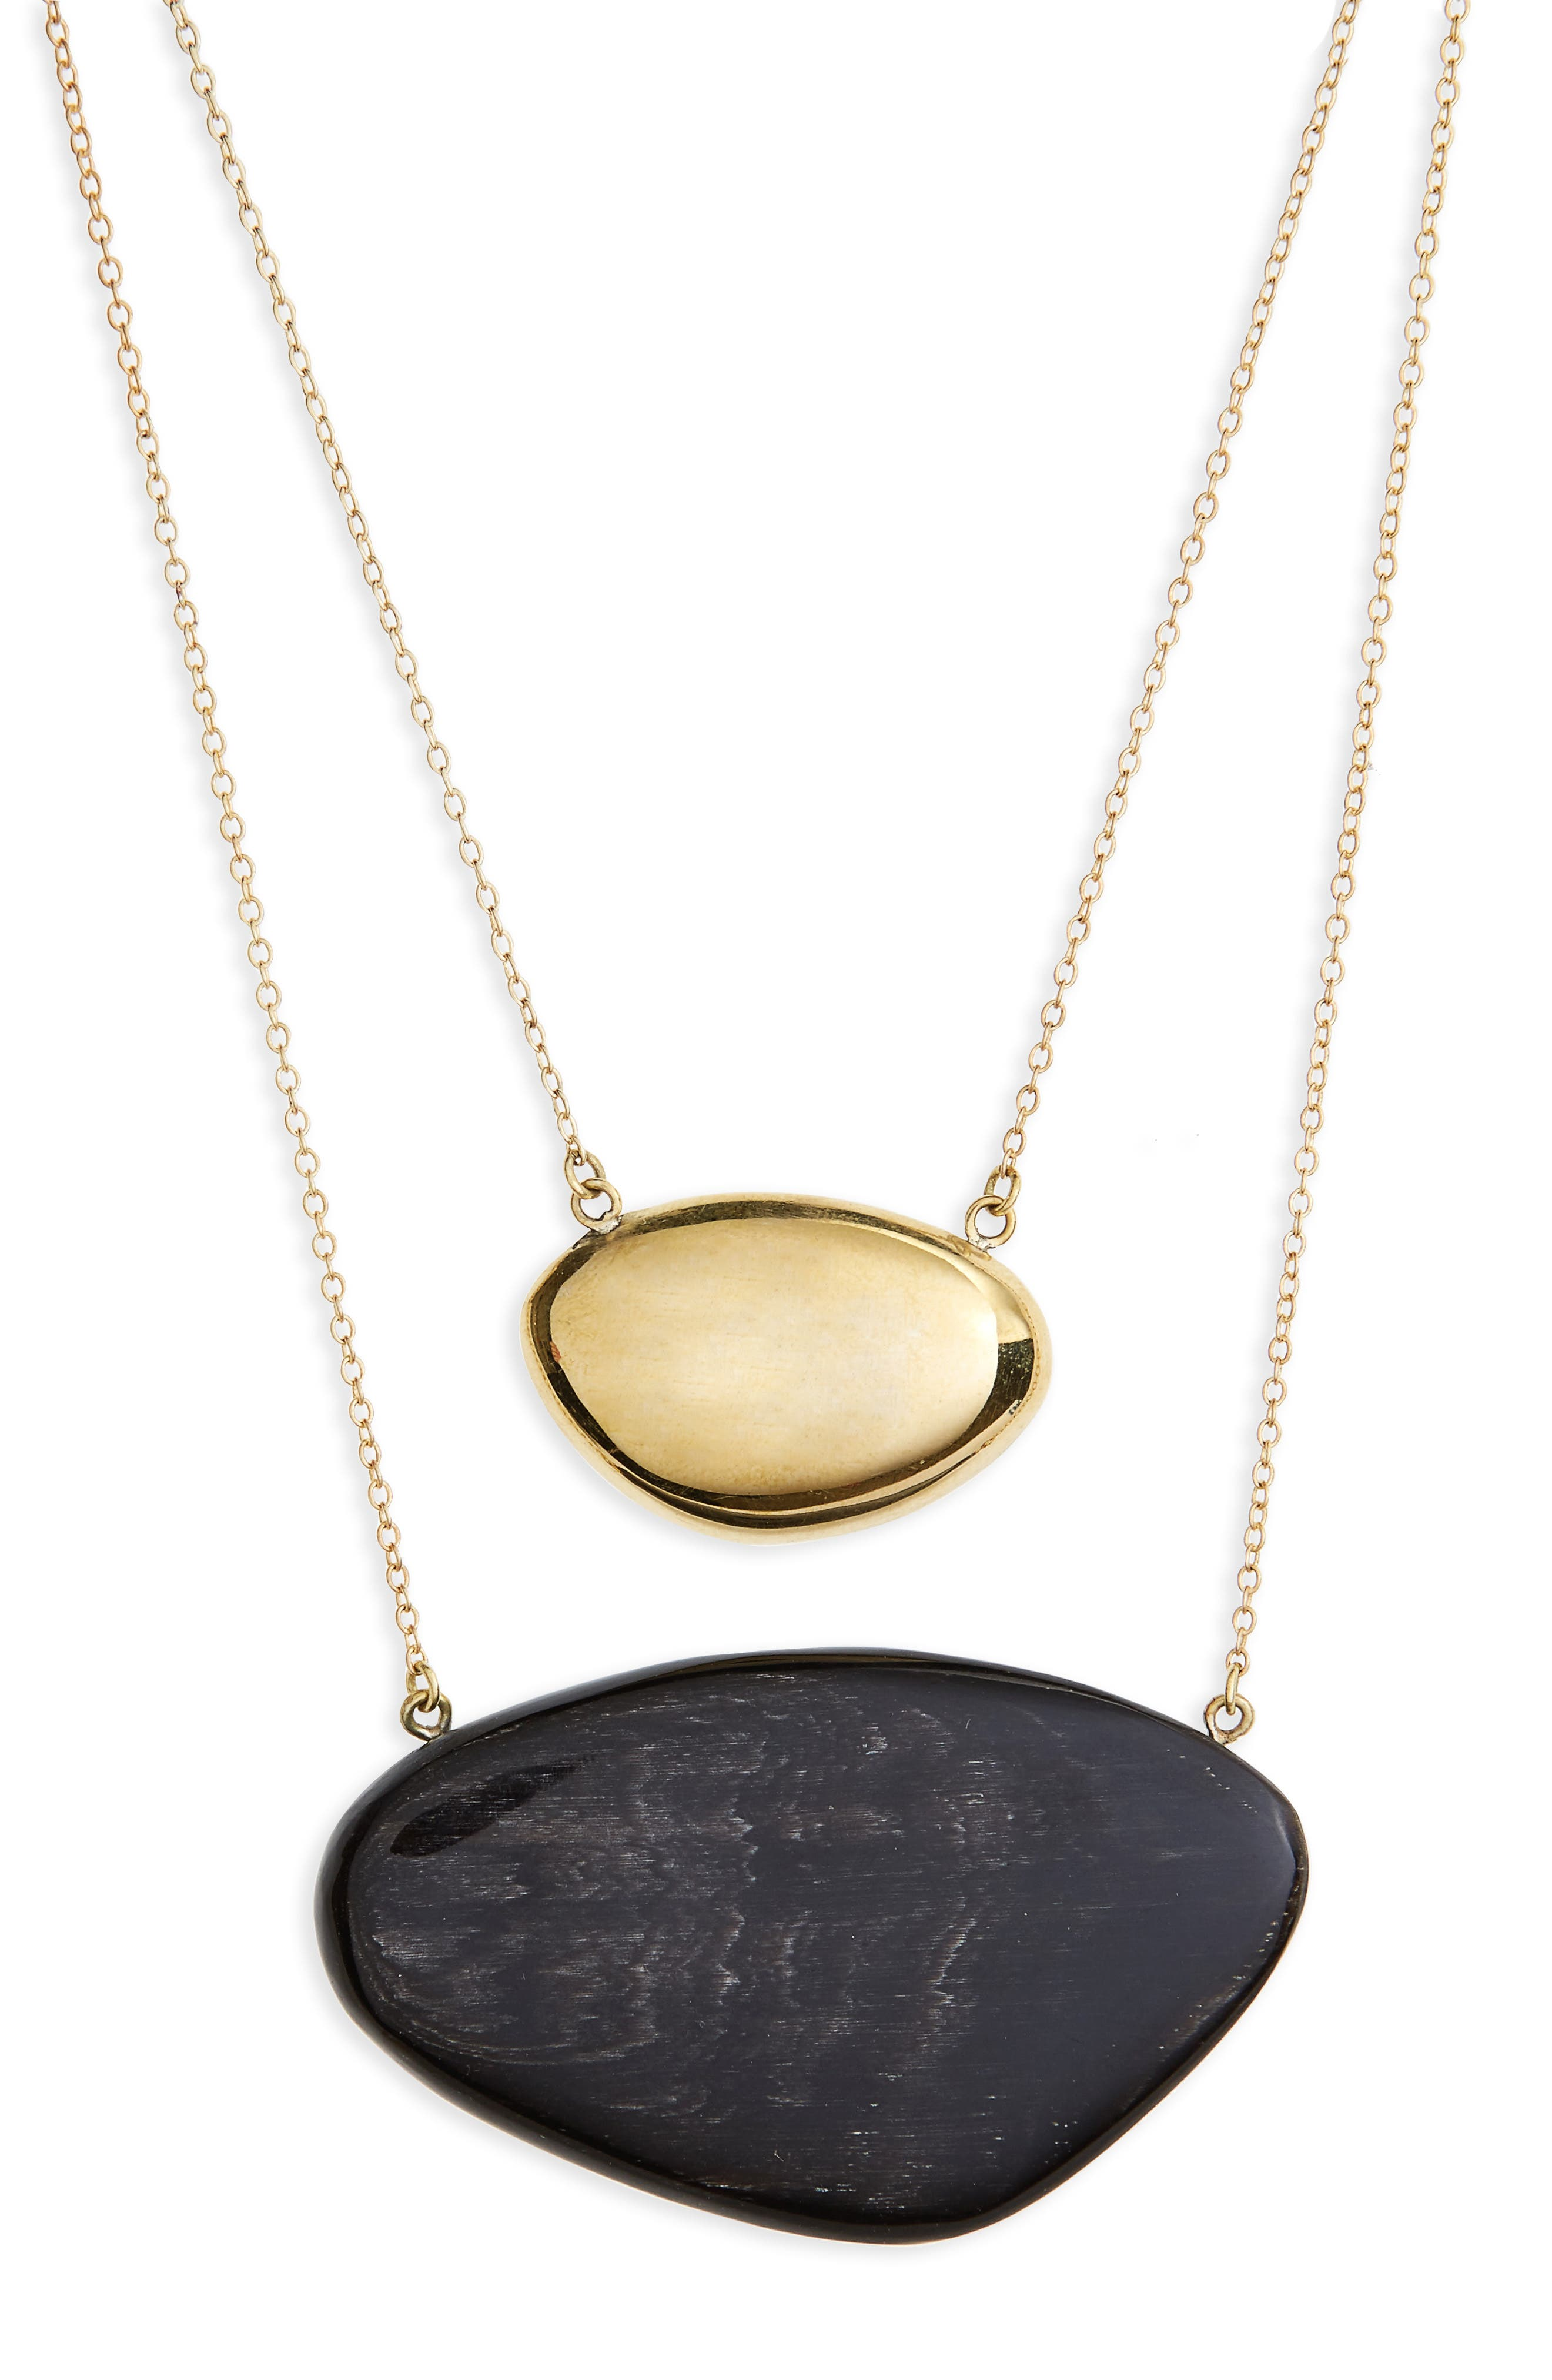 Sabi Layered Necklace,                         Main,                         color, Brass And Black